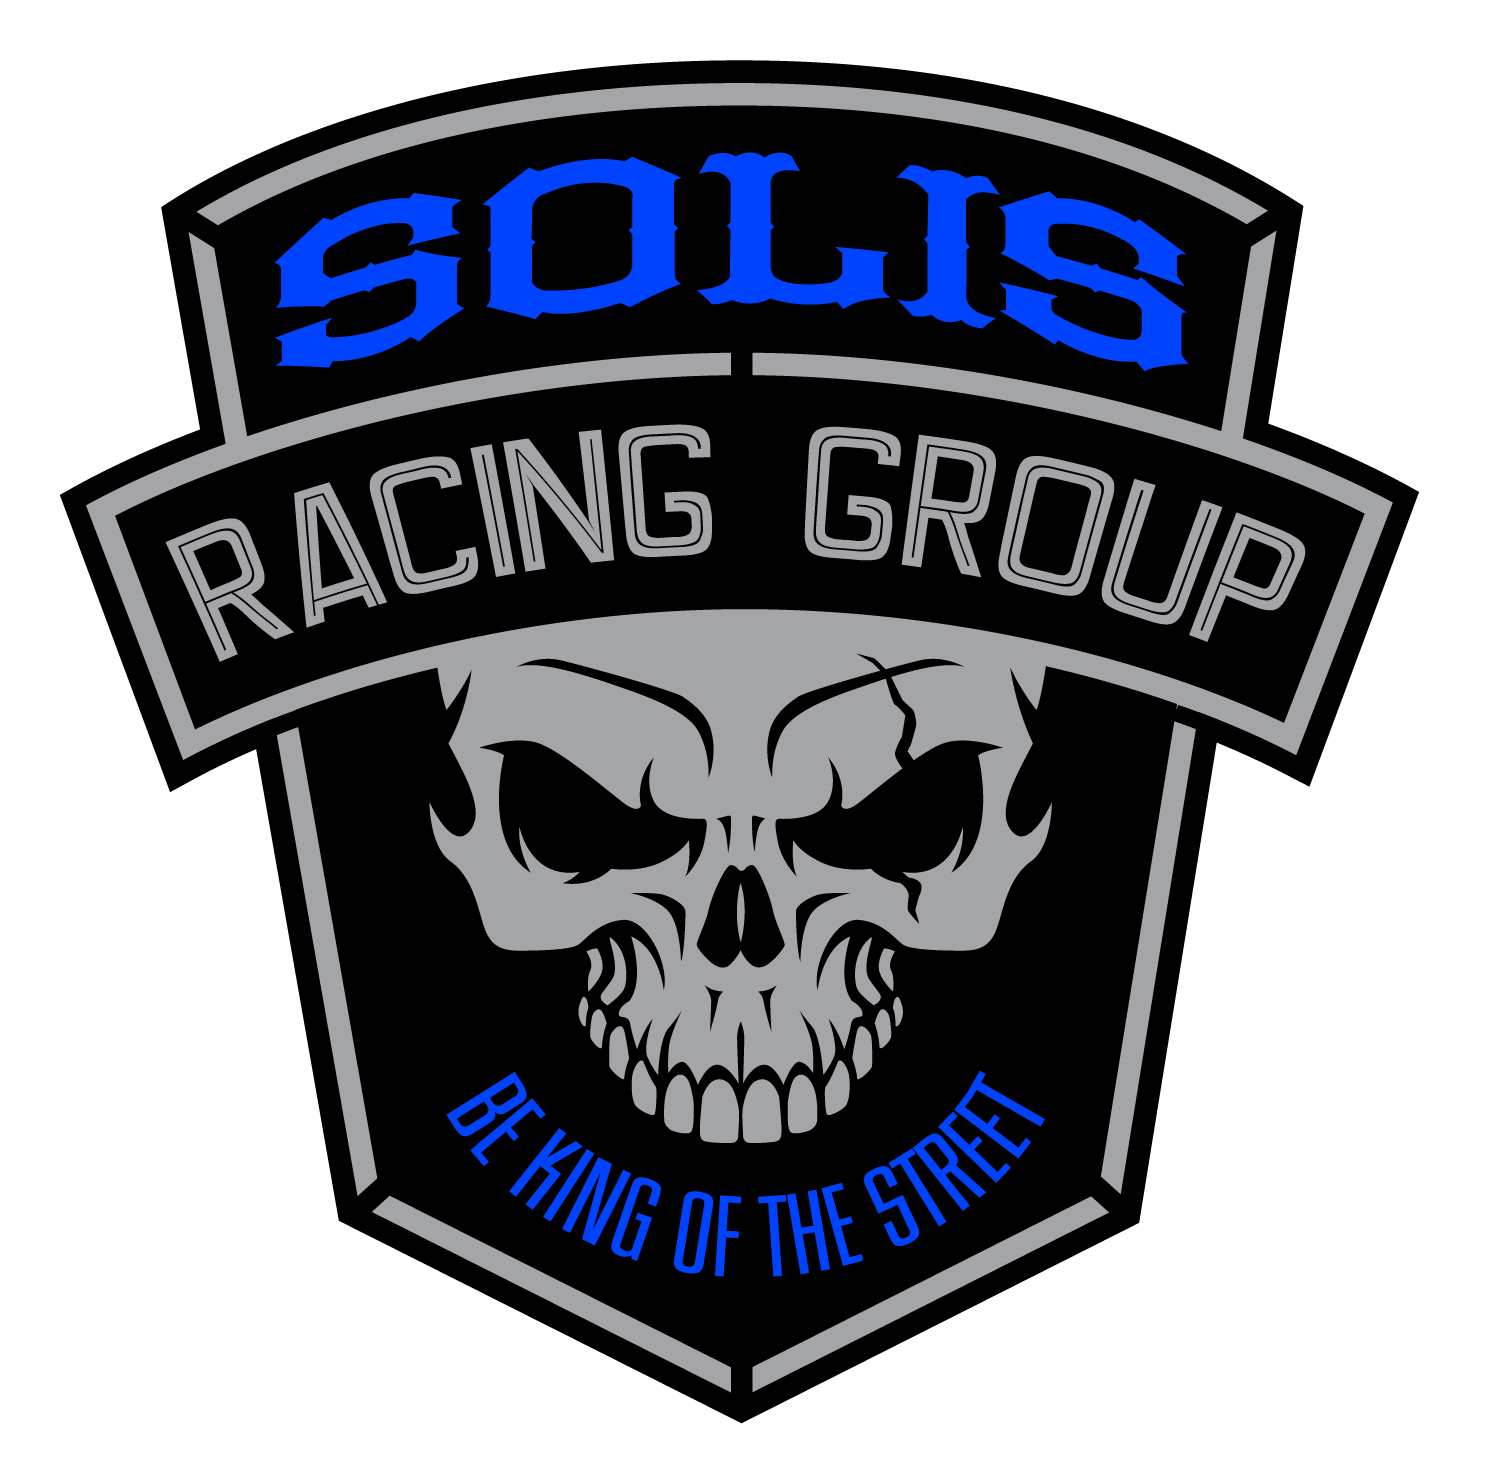 Solis Racing Group | Leader in Aftermarket Parts for Jeep and Dodge